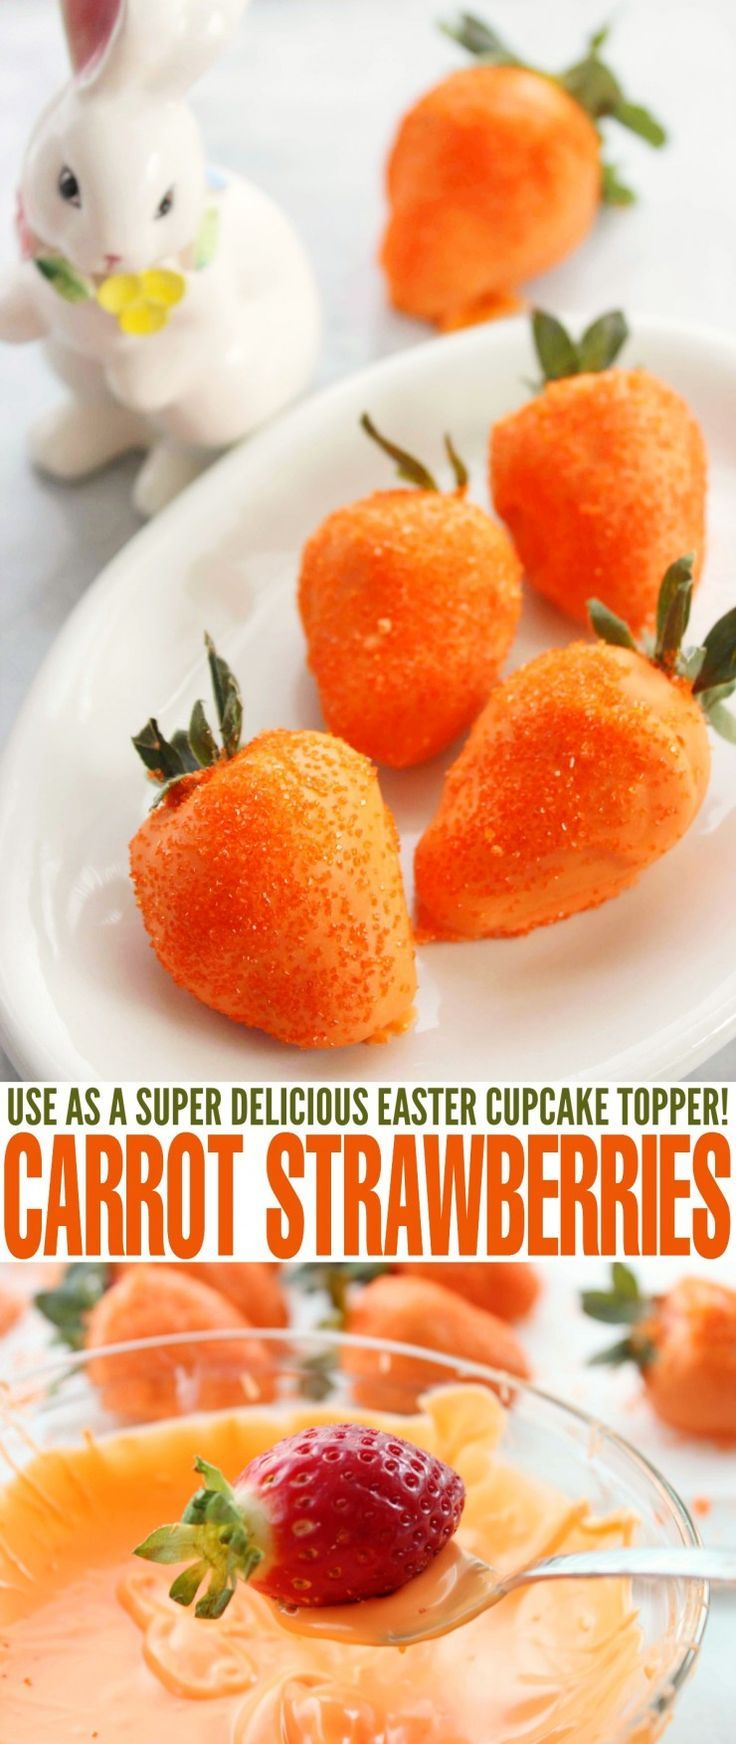 583 best easter treats fun images on pinterest easter food 583 best easter treats fun images on pinterest easter food candies and dessert recipes negle Gallery